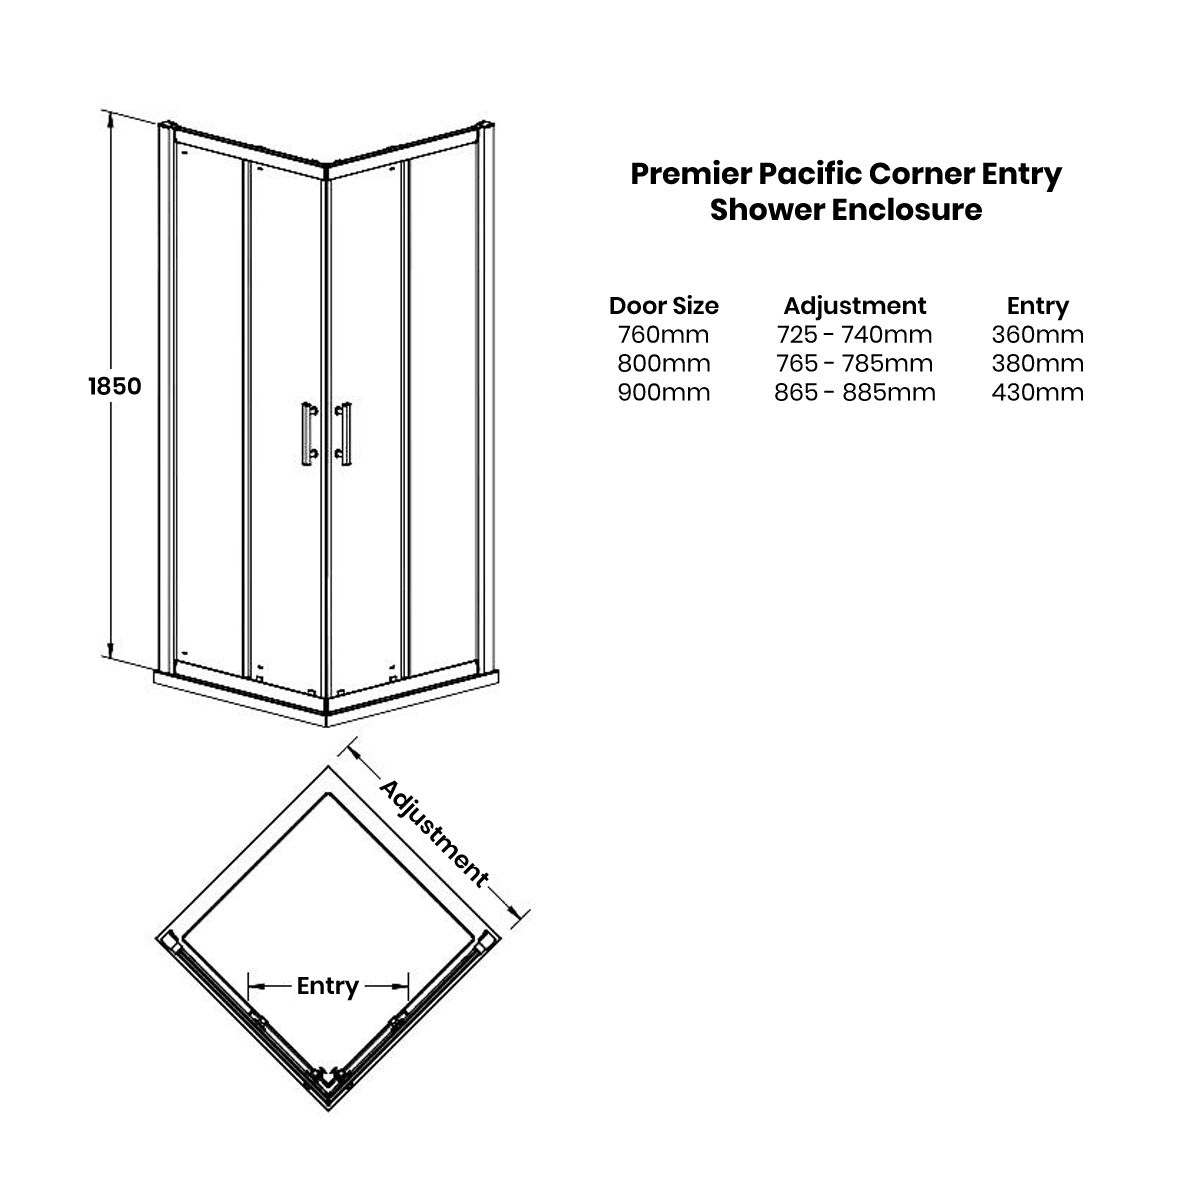 Nuie Pacific Corner Entry Shower Enclosure Dimensions